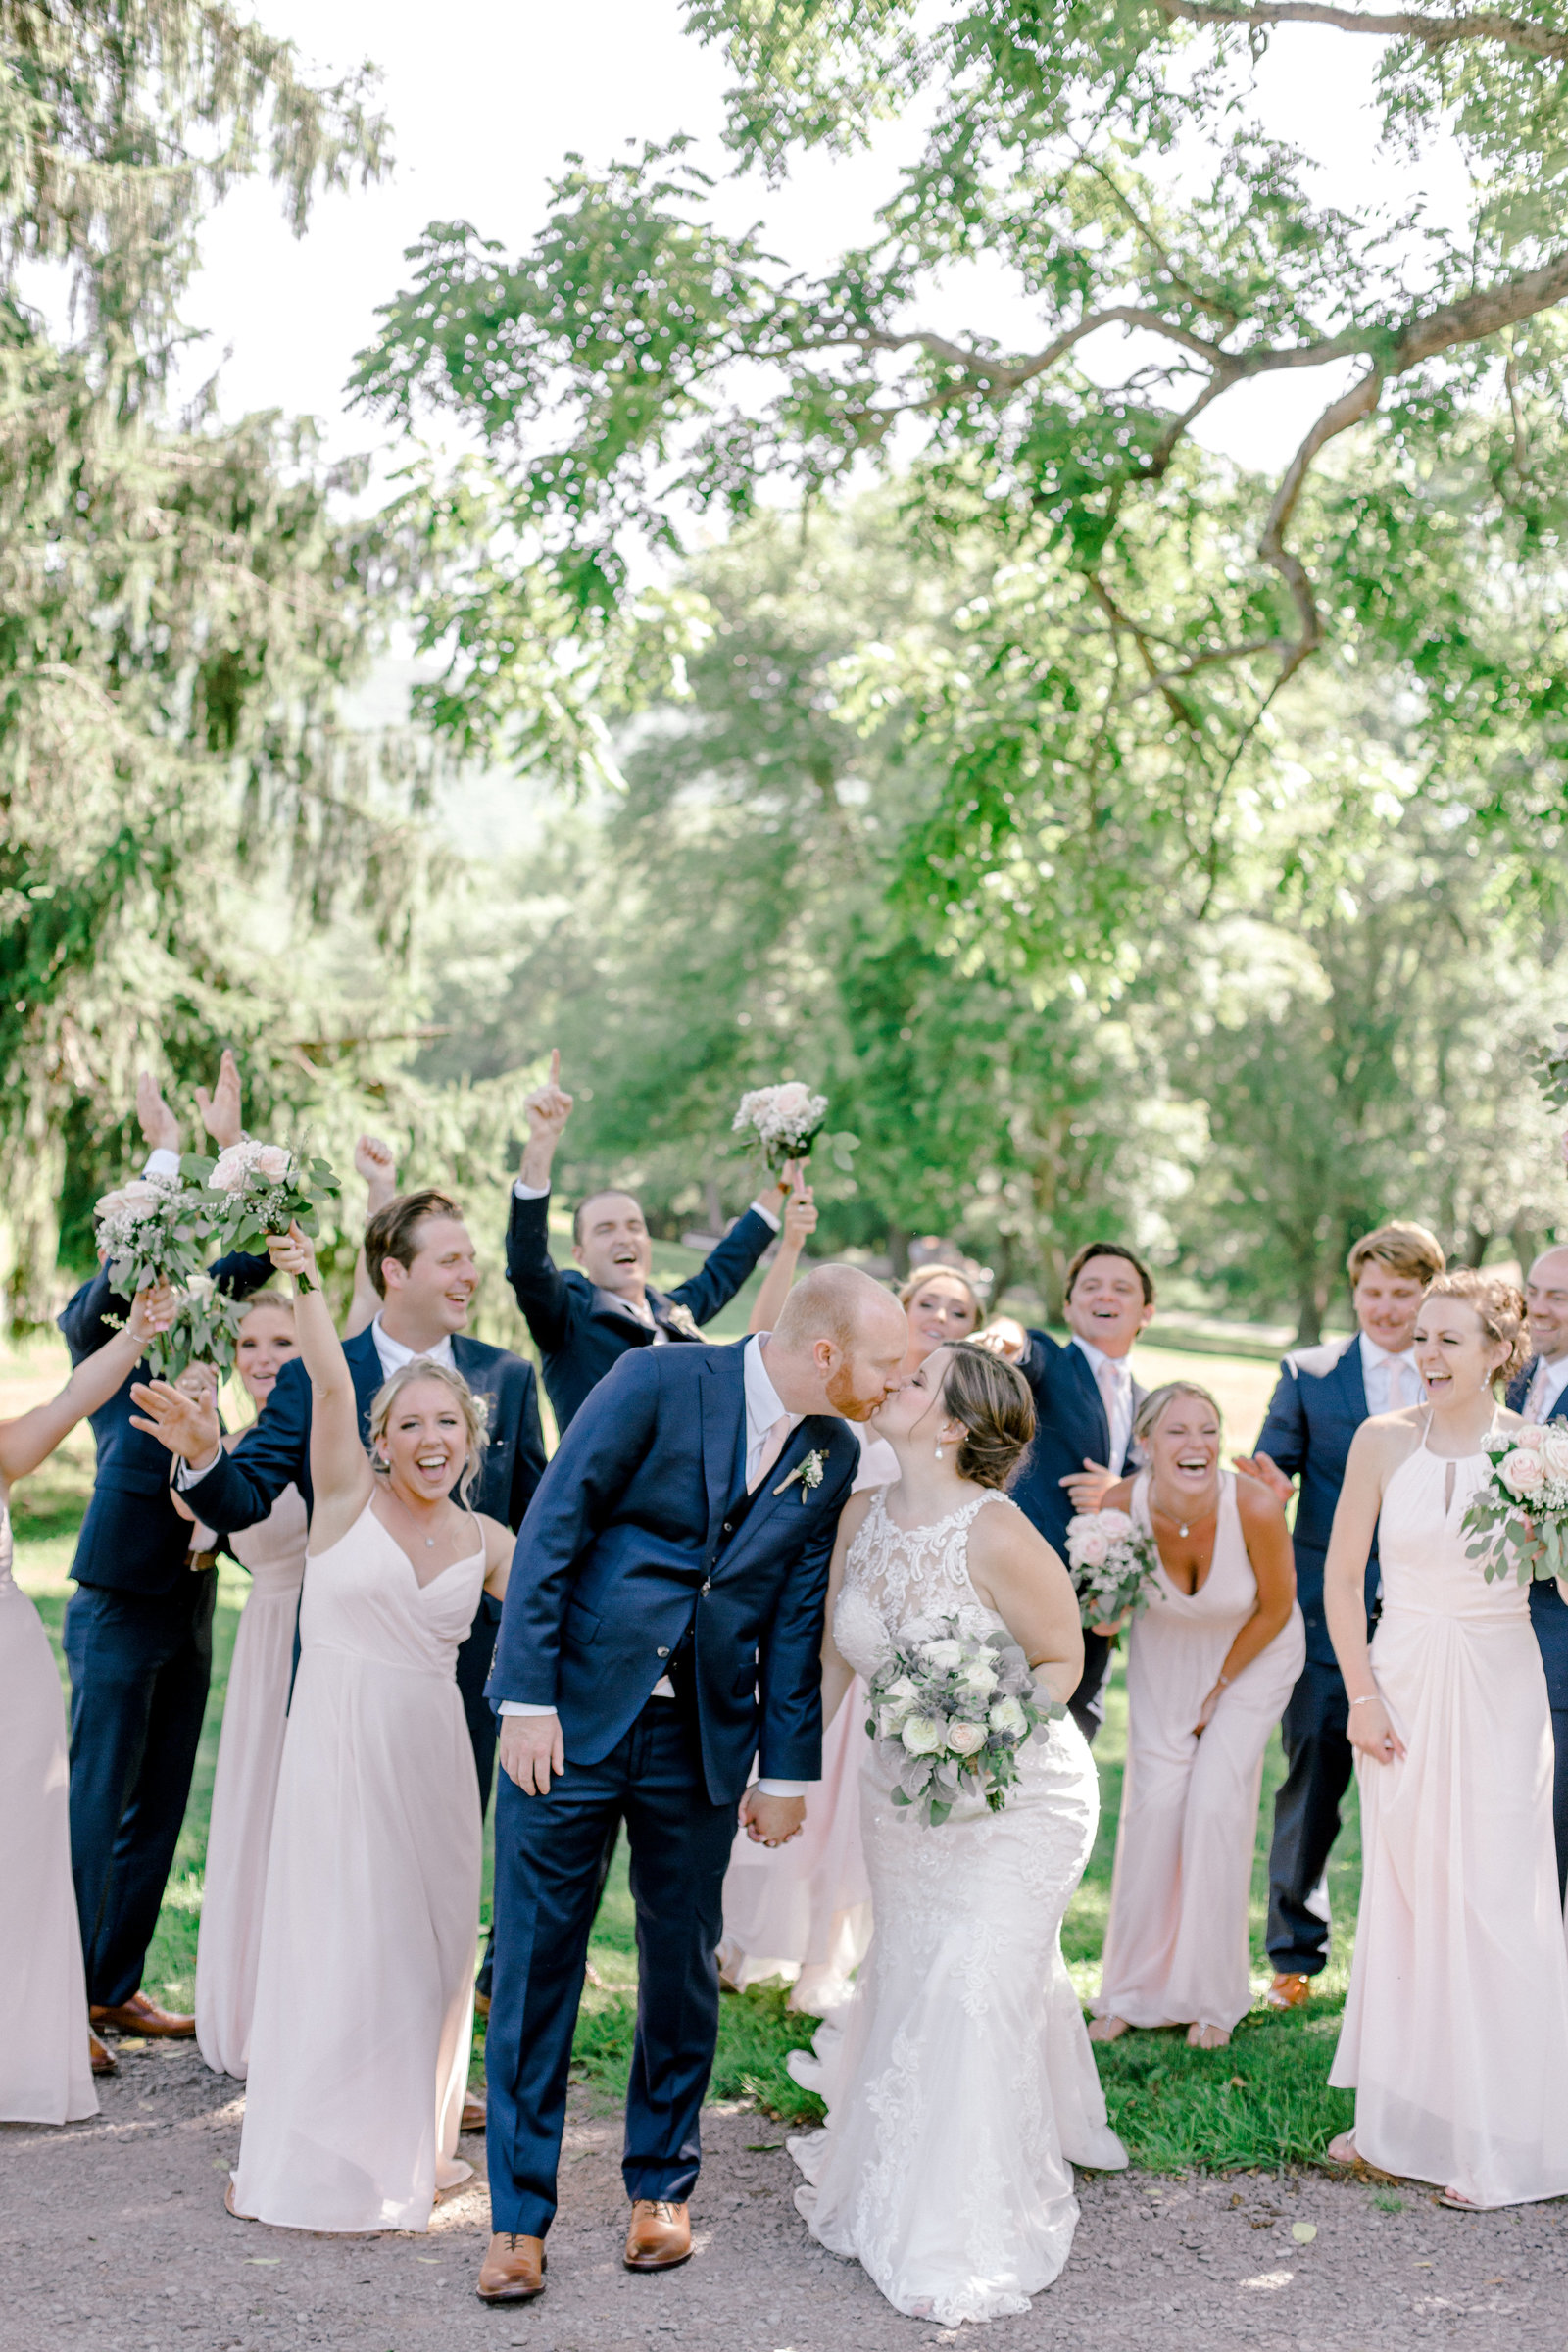 Navy and Blush pink inspired summertime whitewoods wedding in Northeastern Pennsylvania NEPA wapwallopen wedding venue by  PA based wedding and lifestyle photographer Lytle photography (668 of 1590)